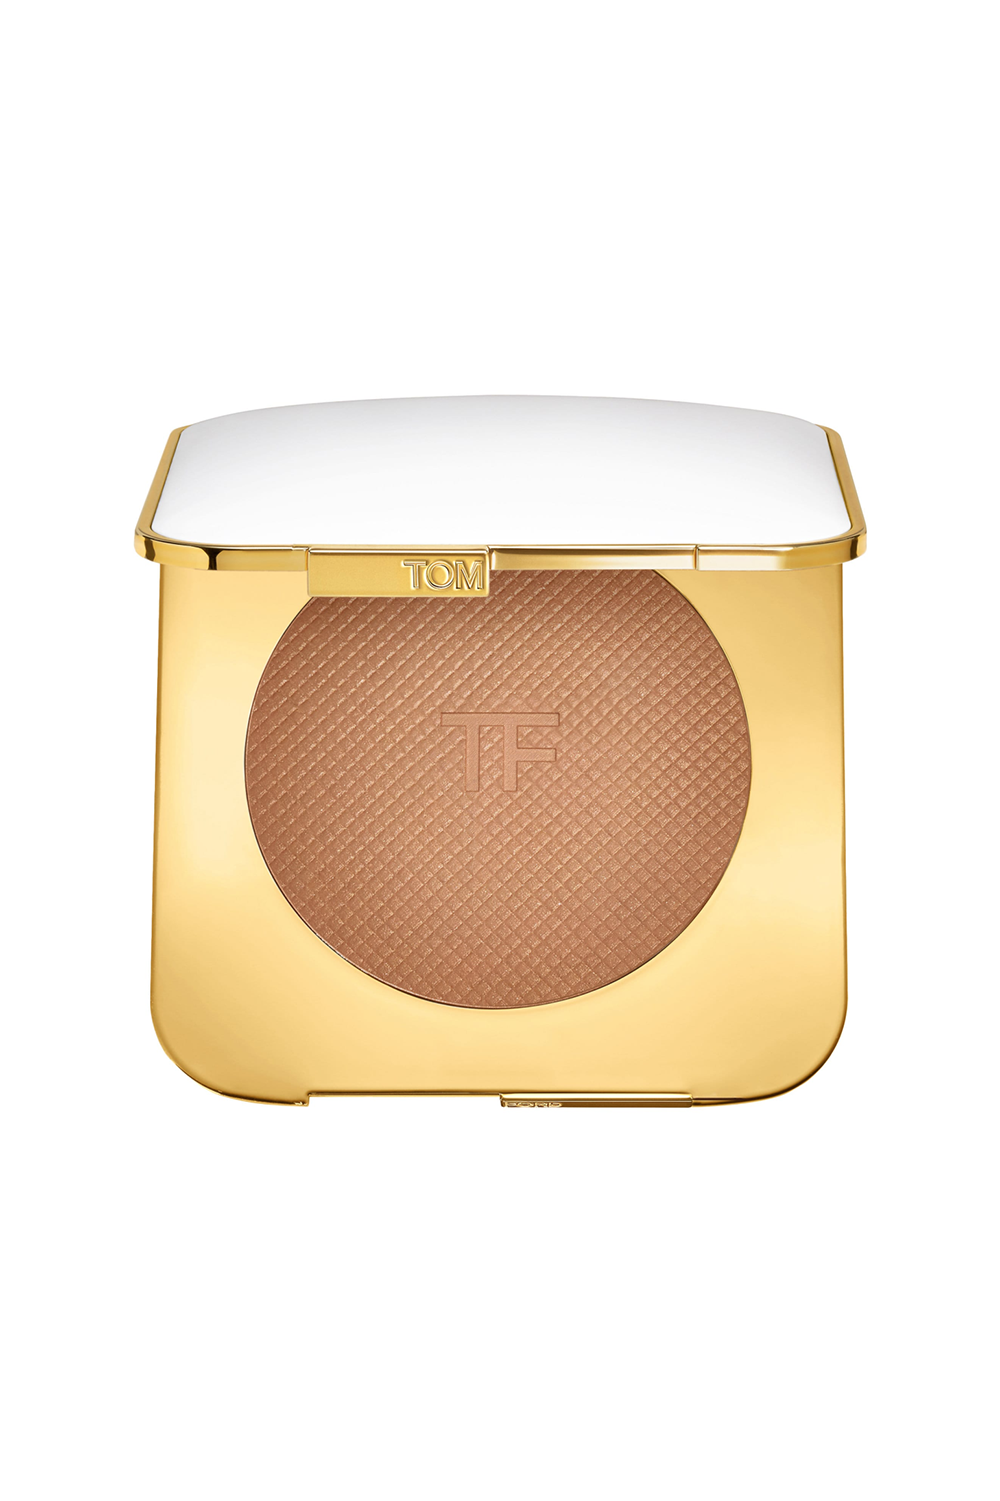 This Luxurious Bronzer Tom Ford Soleil Glow Bronzer, $112 SHOP IT Yes, you absolutely deserve a glow-up brought to you by the one and only Tom Ford. This bronzer, made of plant-derived butters, will melt right onto your skin leaving behind a buildable, subtle kiss of shimmer.